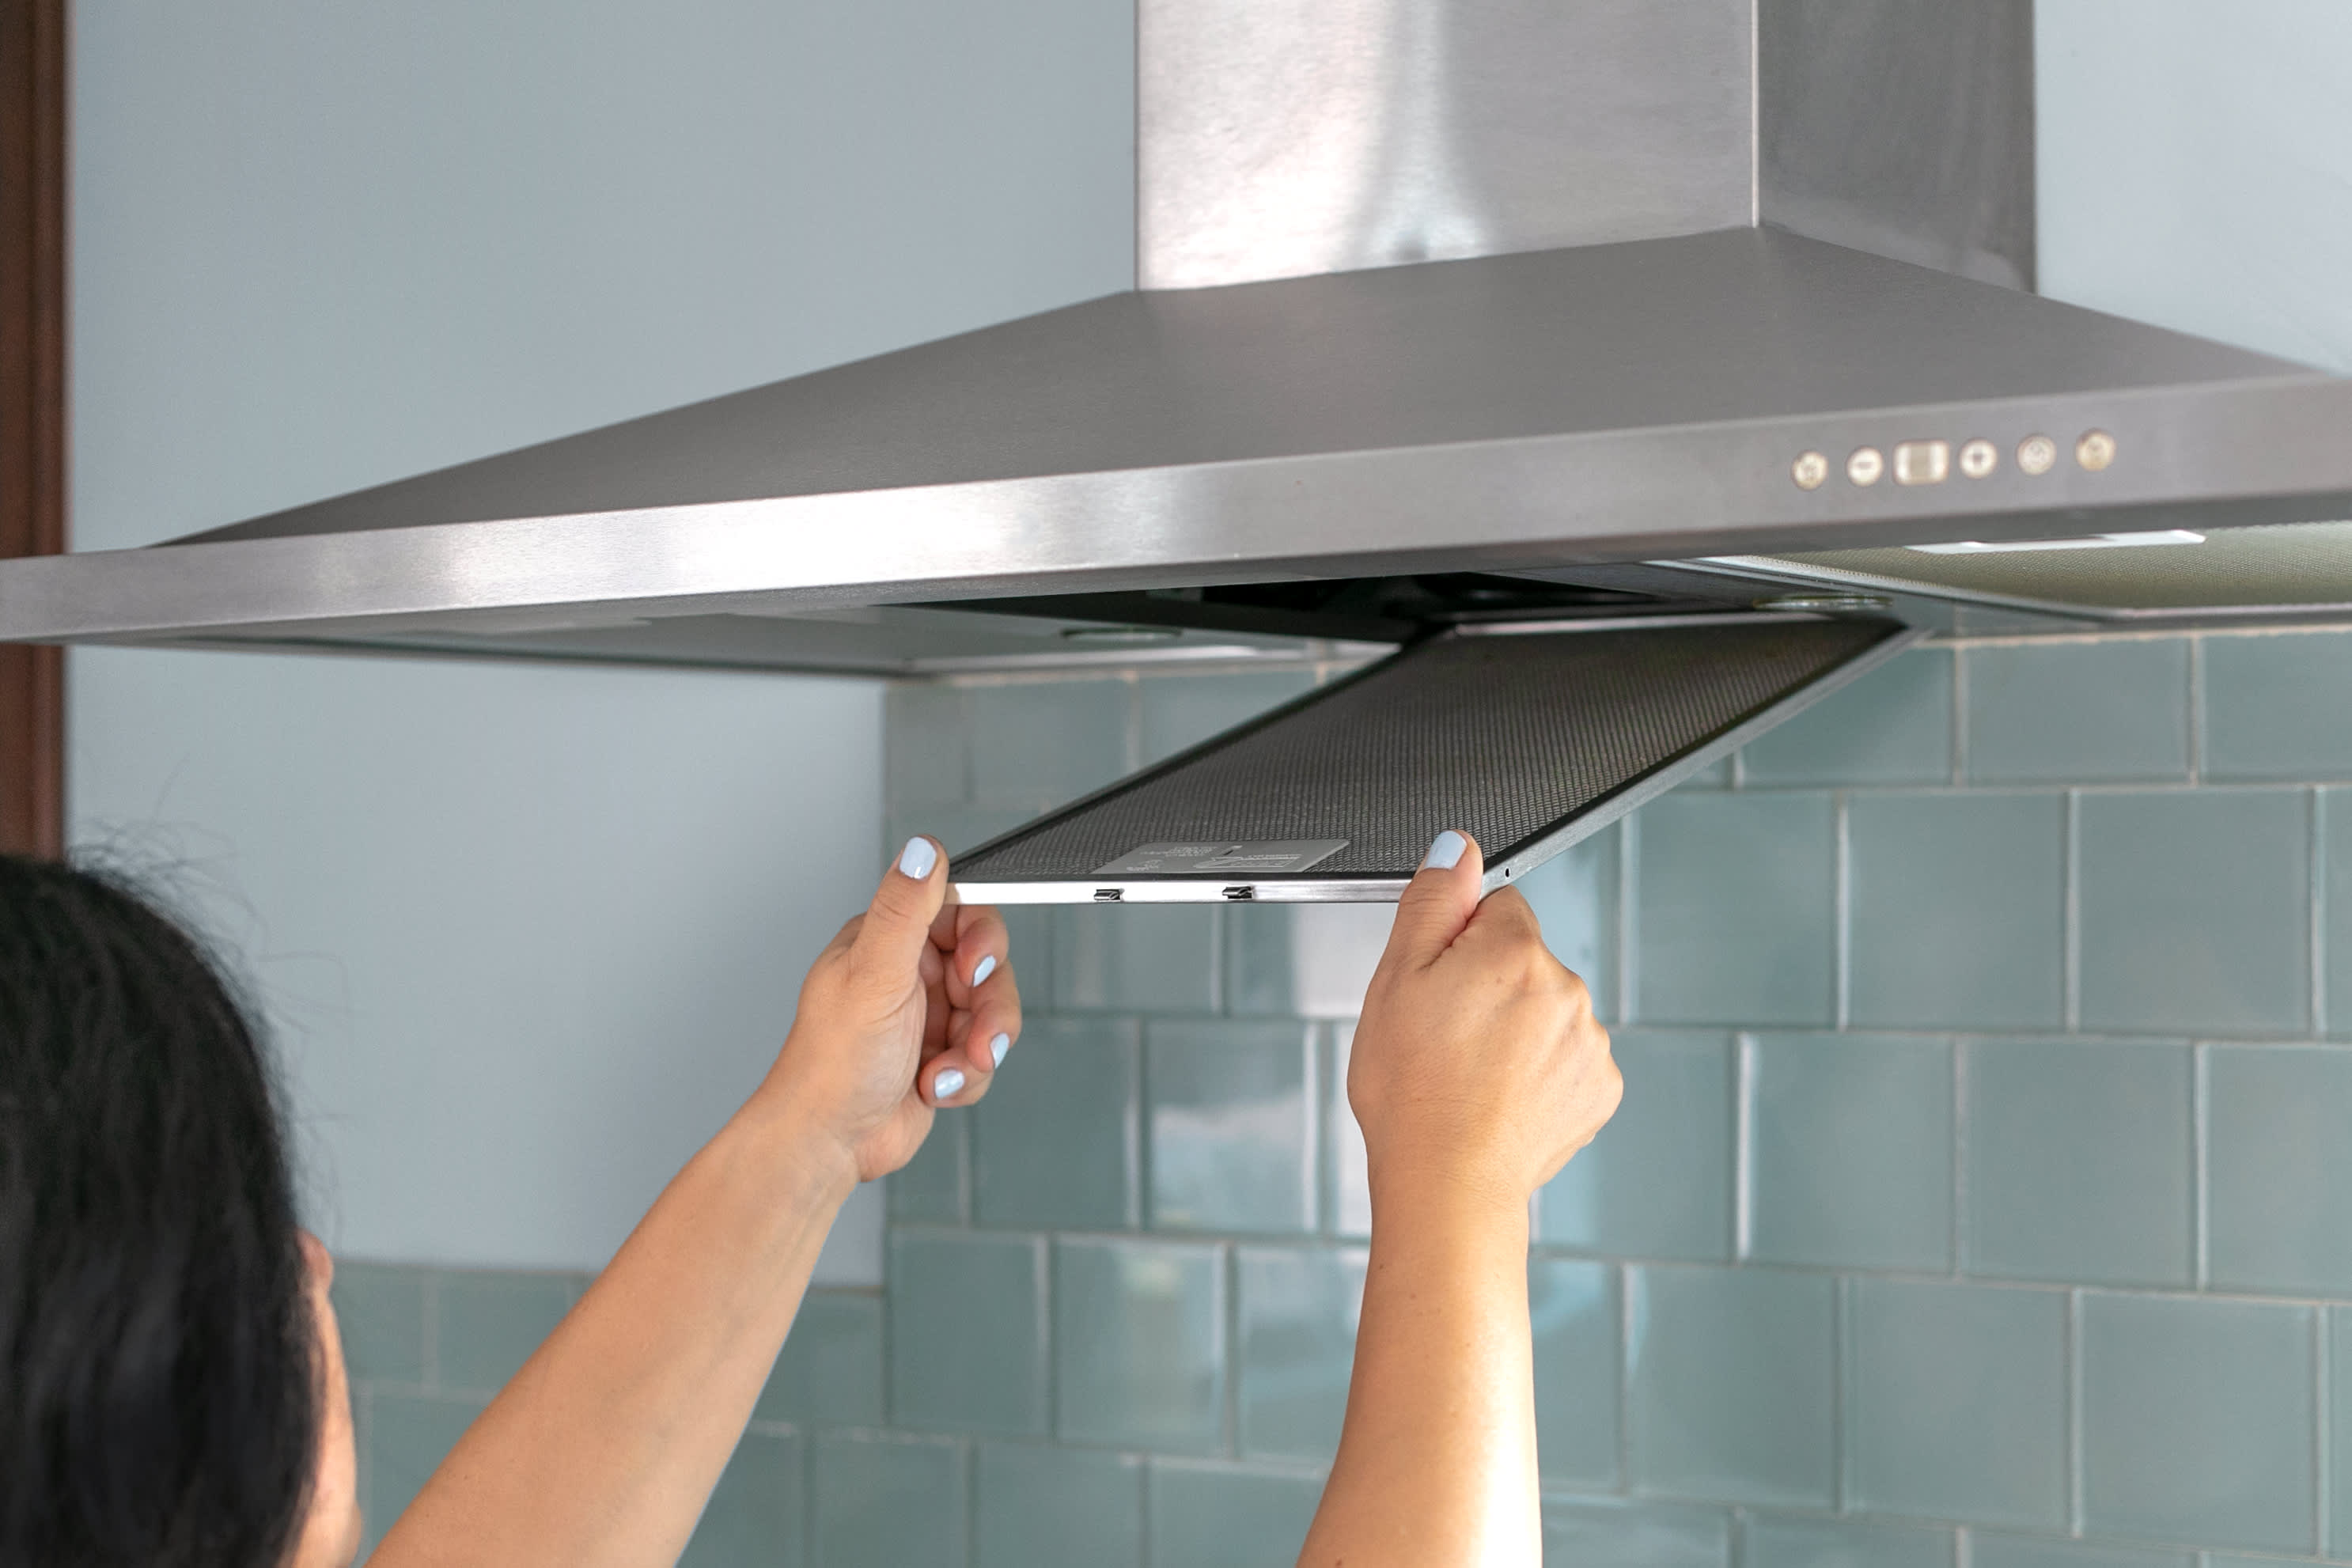 how to remove grease from stove hood